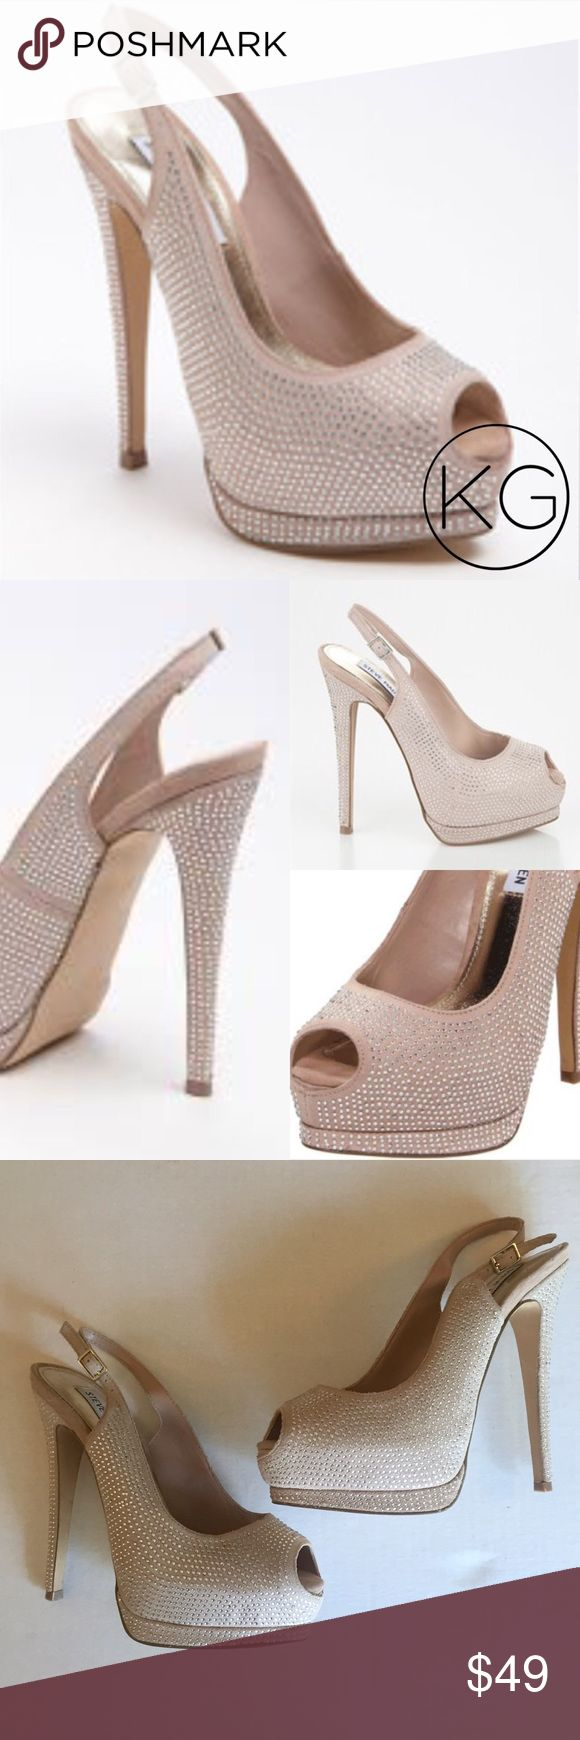 """Steve Madden Masqraid Rhinestone Peep Toe Pumps In great pre-owned condition! Some signs of wear, see photos for details 😊 •Women's size 7.5 •Beautiful champagne color peep-toe heels with rhinestones •6"""" stacked heel, 1.5"""" platform •Leather upper, Manmade sole  •Left shoe missing some rhinestones, a few dark scuffs near the sole- not noticeable when on but worth noting.  •Last two photos are of actual shoes •Retail $140 🚫no trades nor lowball offers🚫 Thank you for shopping in my closet…"""